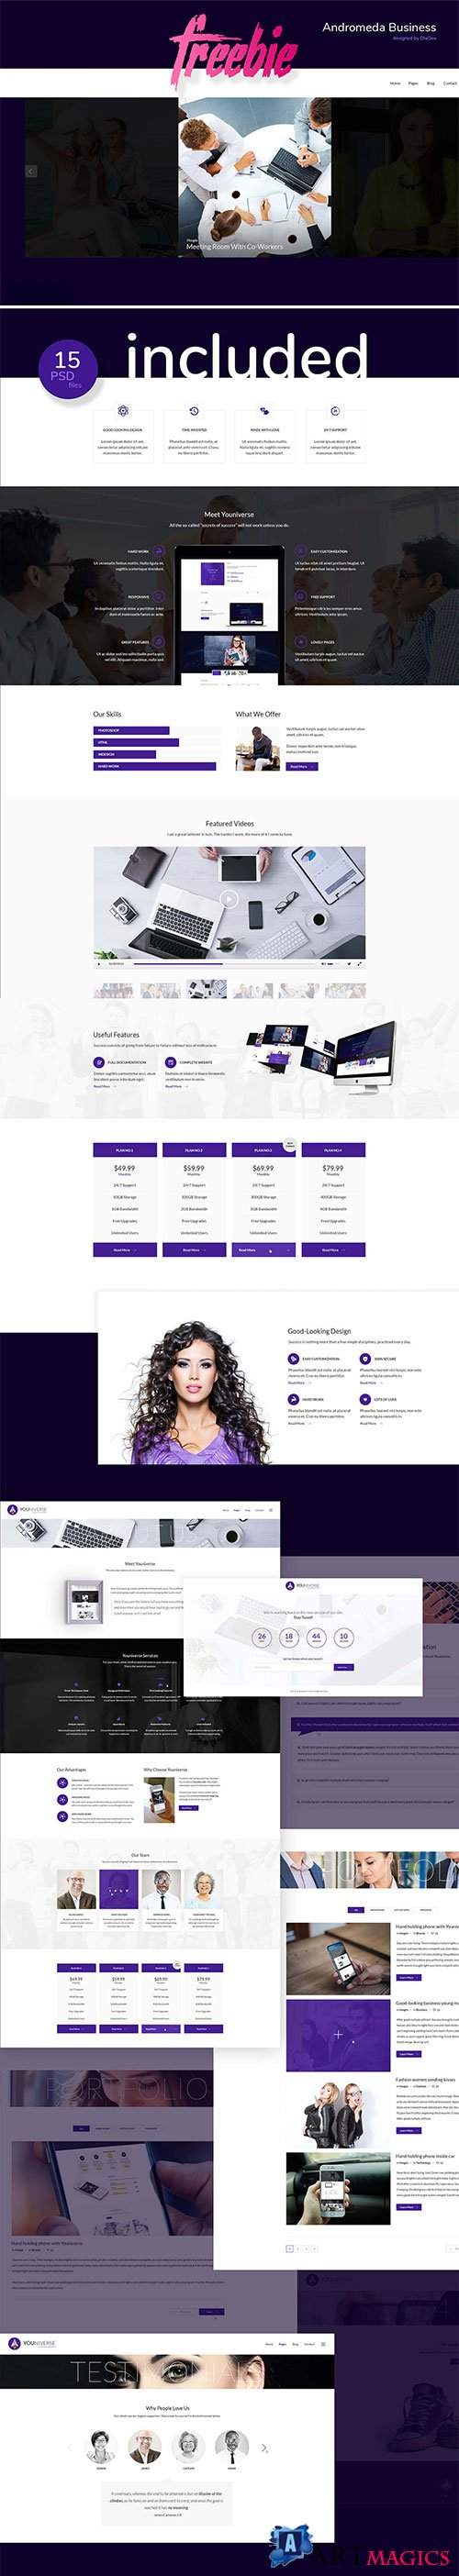 Andromeda Business Template